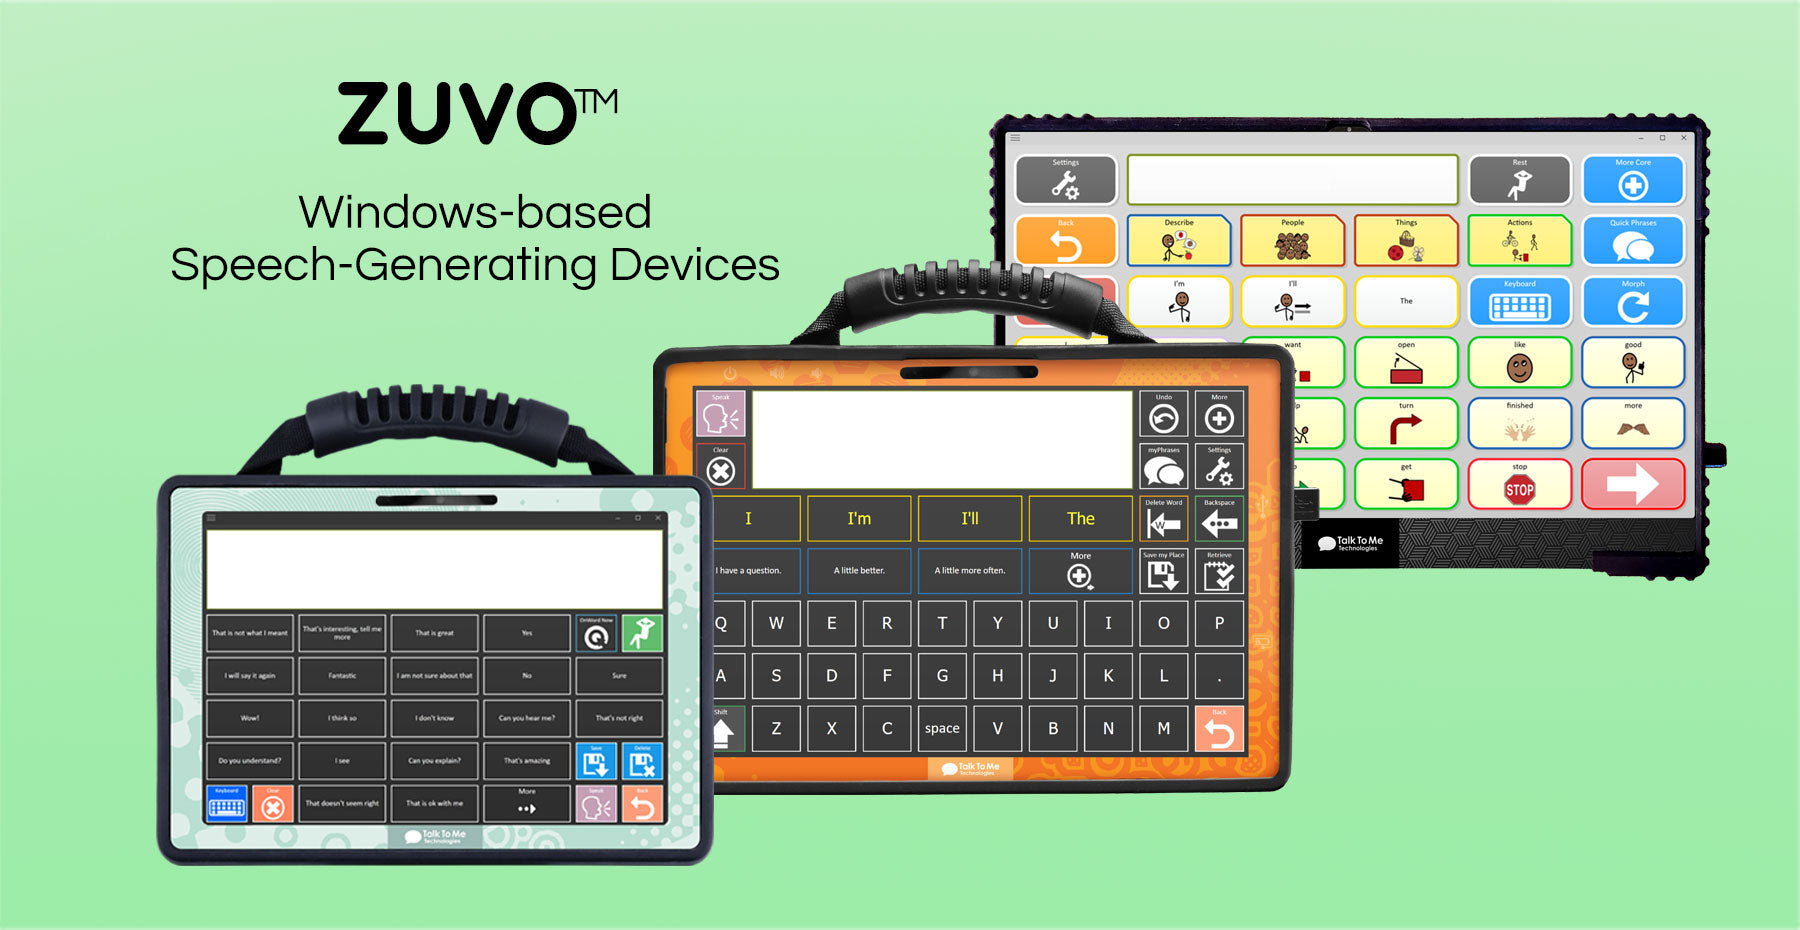 all zuvo devices